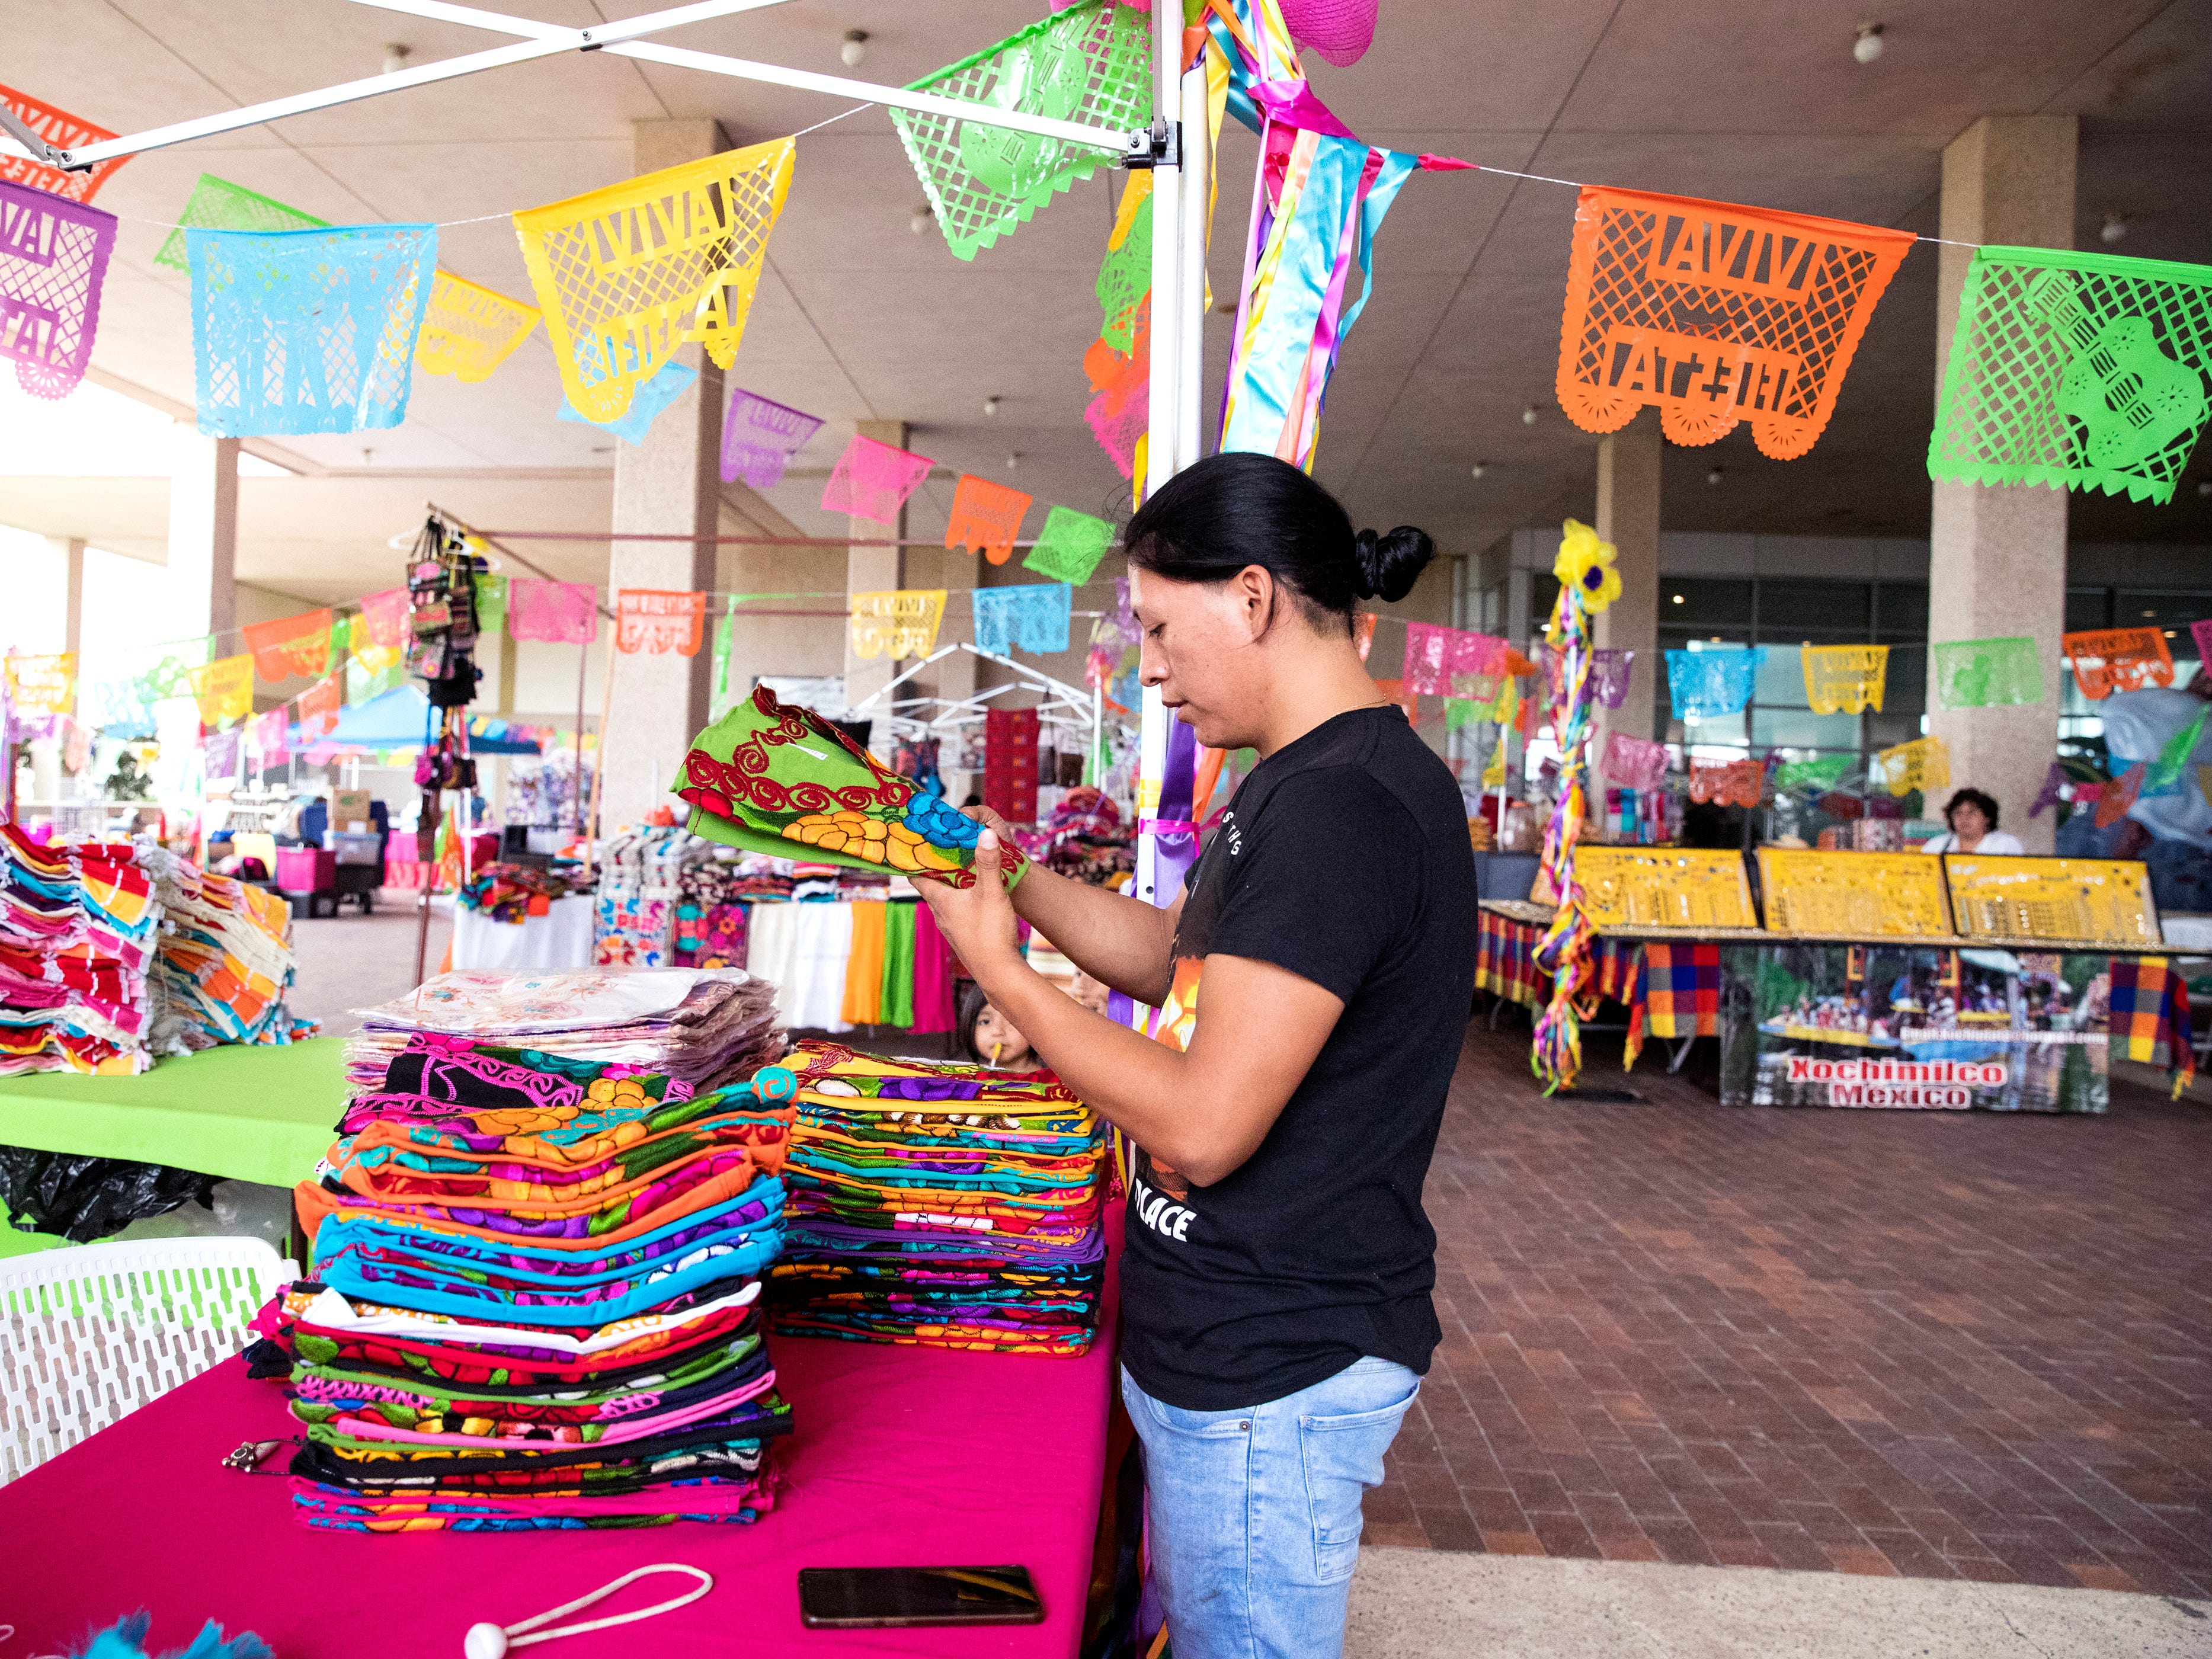 Michael Santian sets up his booth in The Mercado in the American Bank Center before Fiesta de la Flor opens on Friday, April 12, 2019. The festival is in honor of the late Tejano singer Selena Quintanilla-Perez. The two-day music event is held in Corpus Christi, Texas.